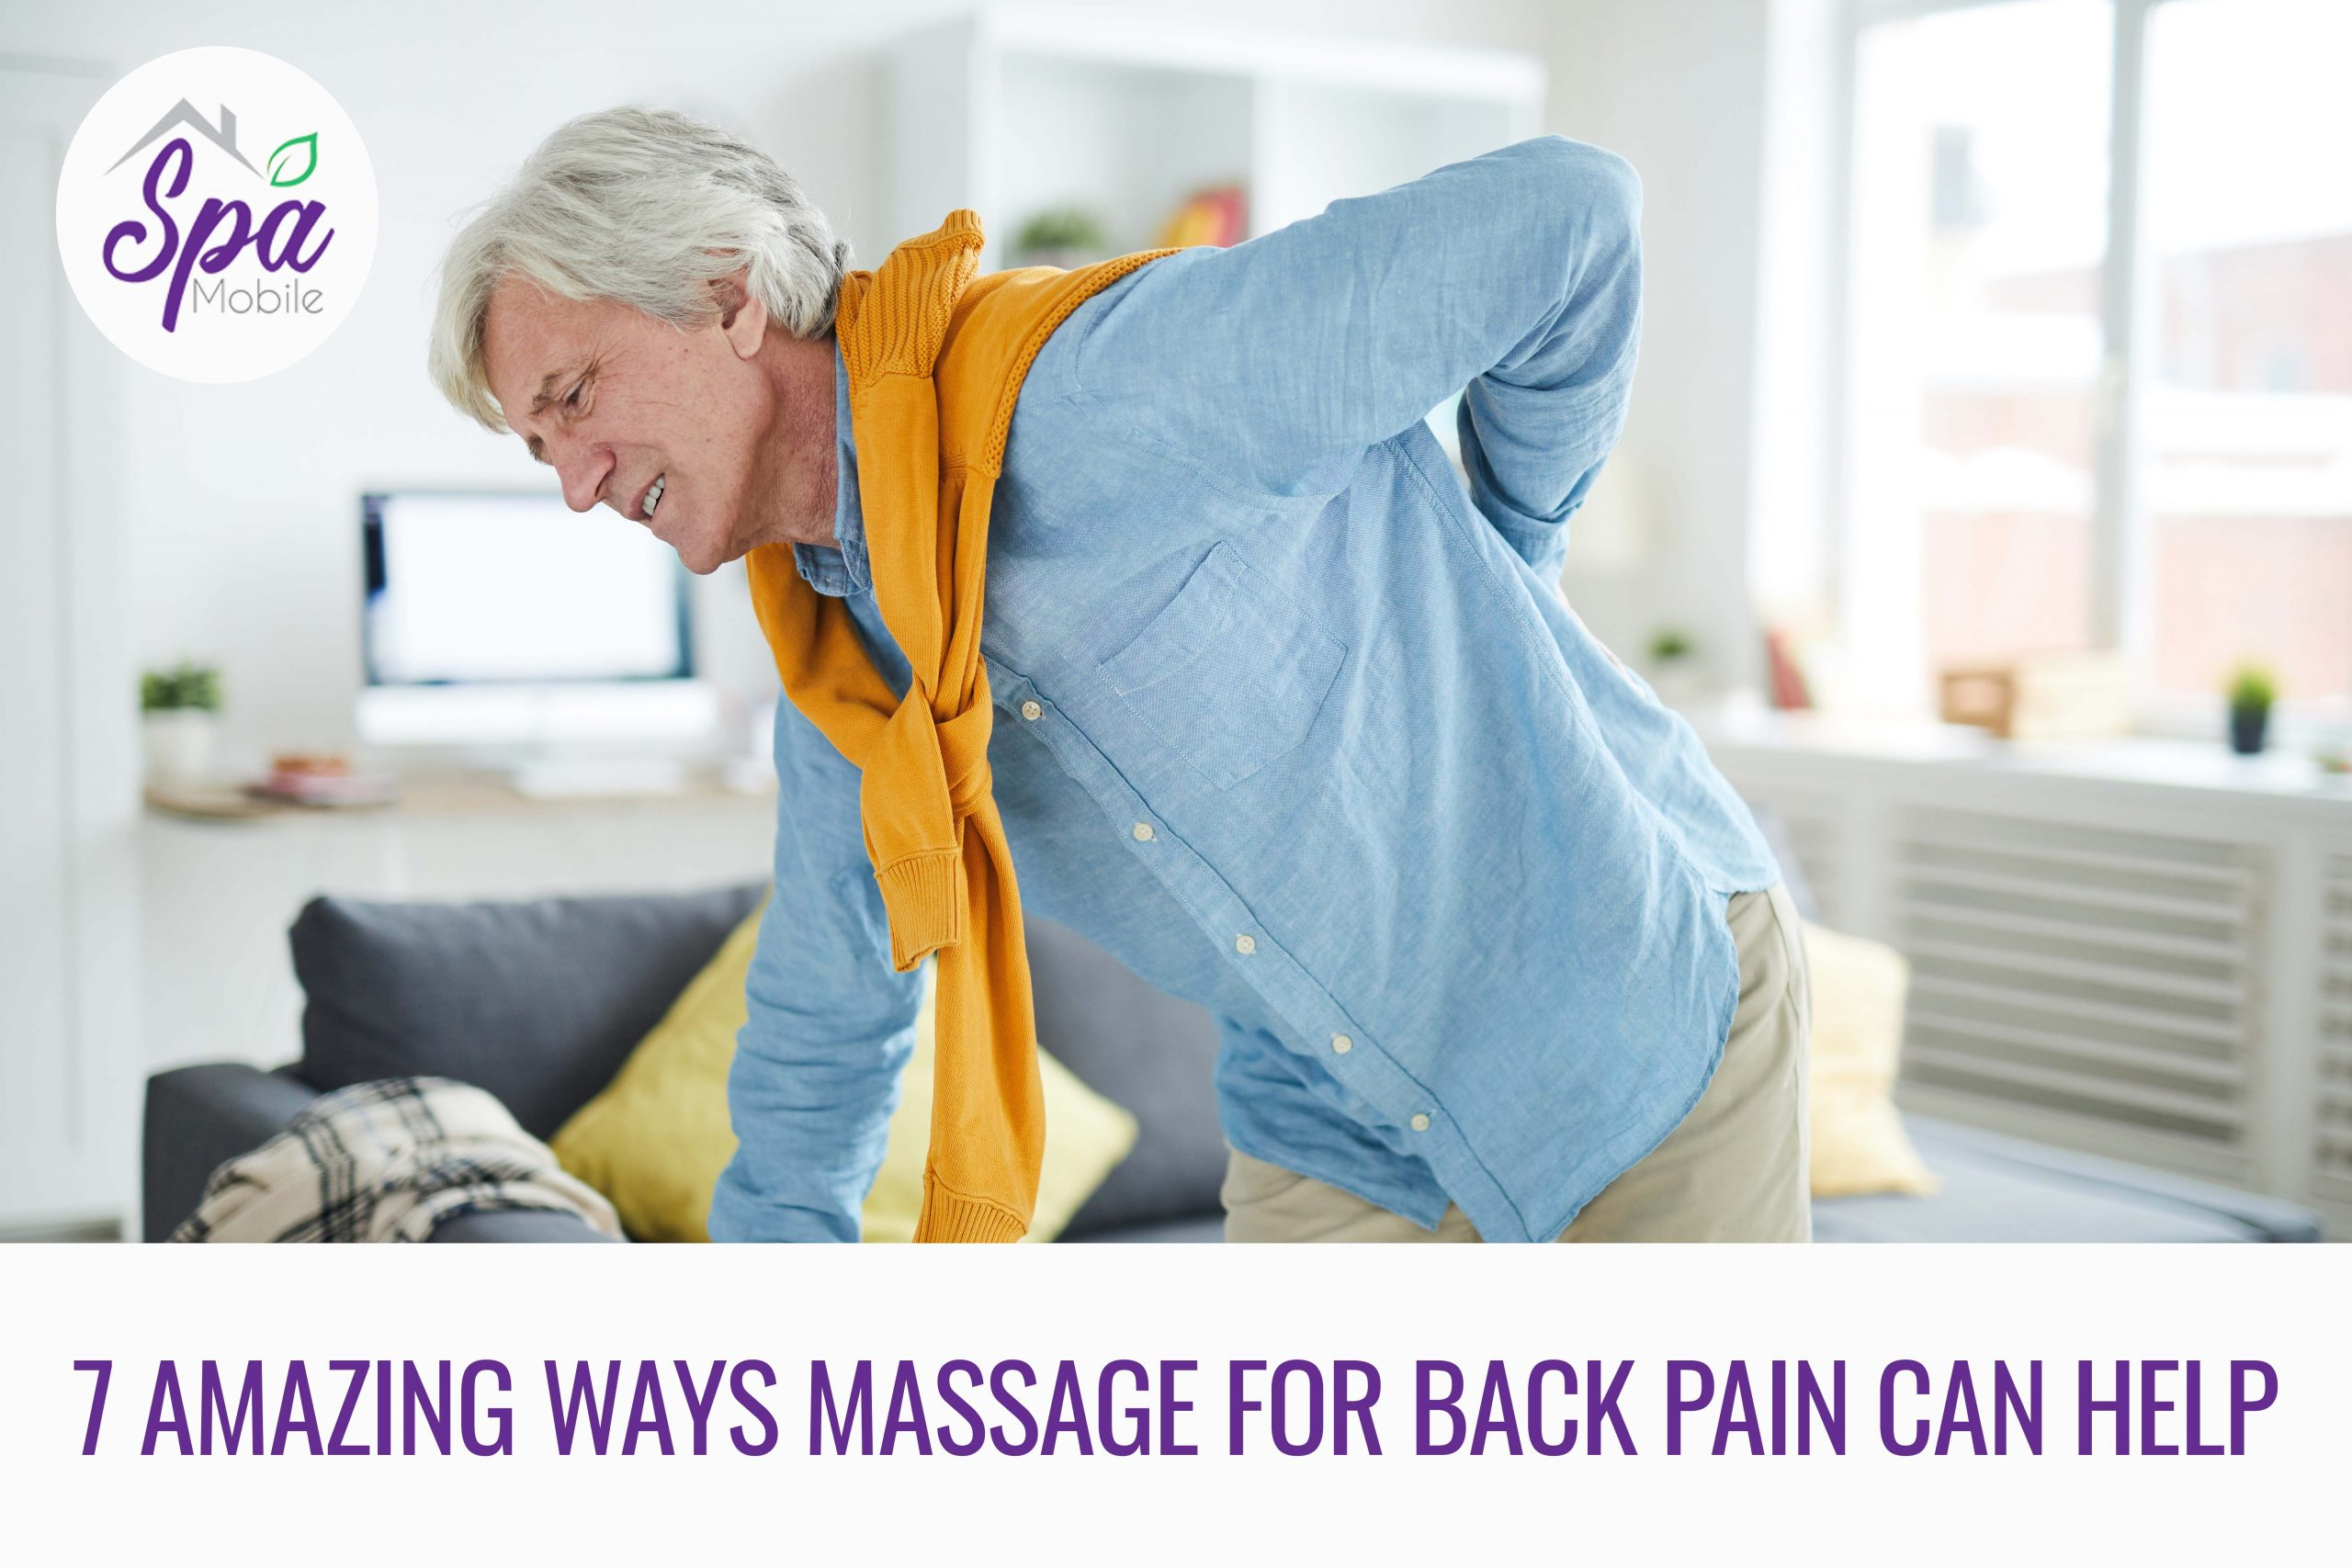 7 Amazing Ways Massage For Back Pain Can Help social media